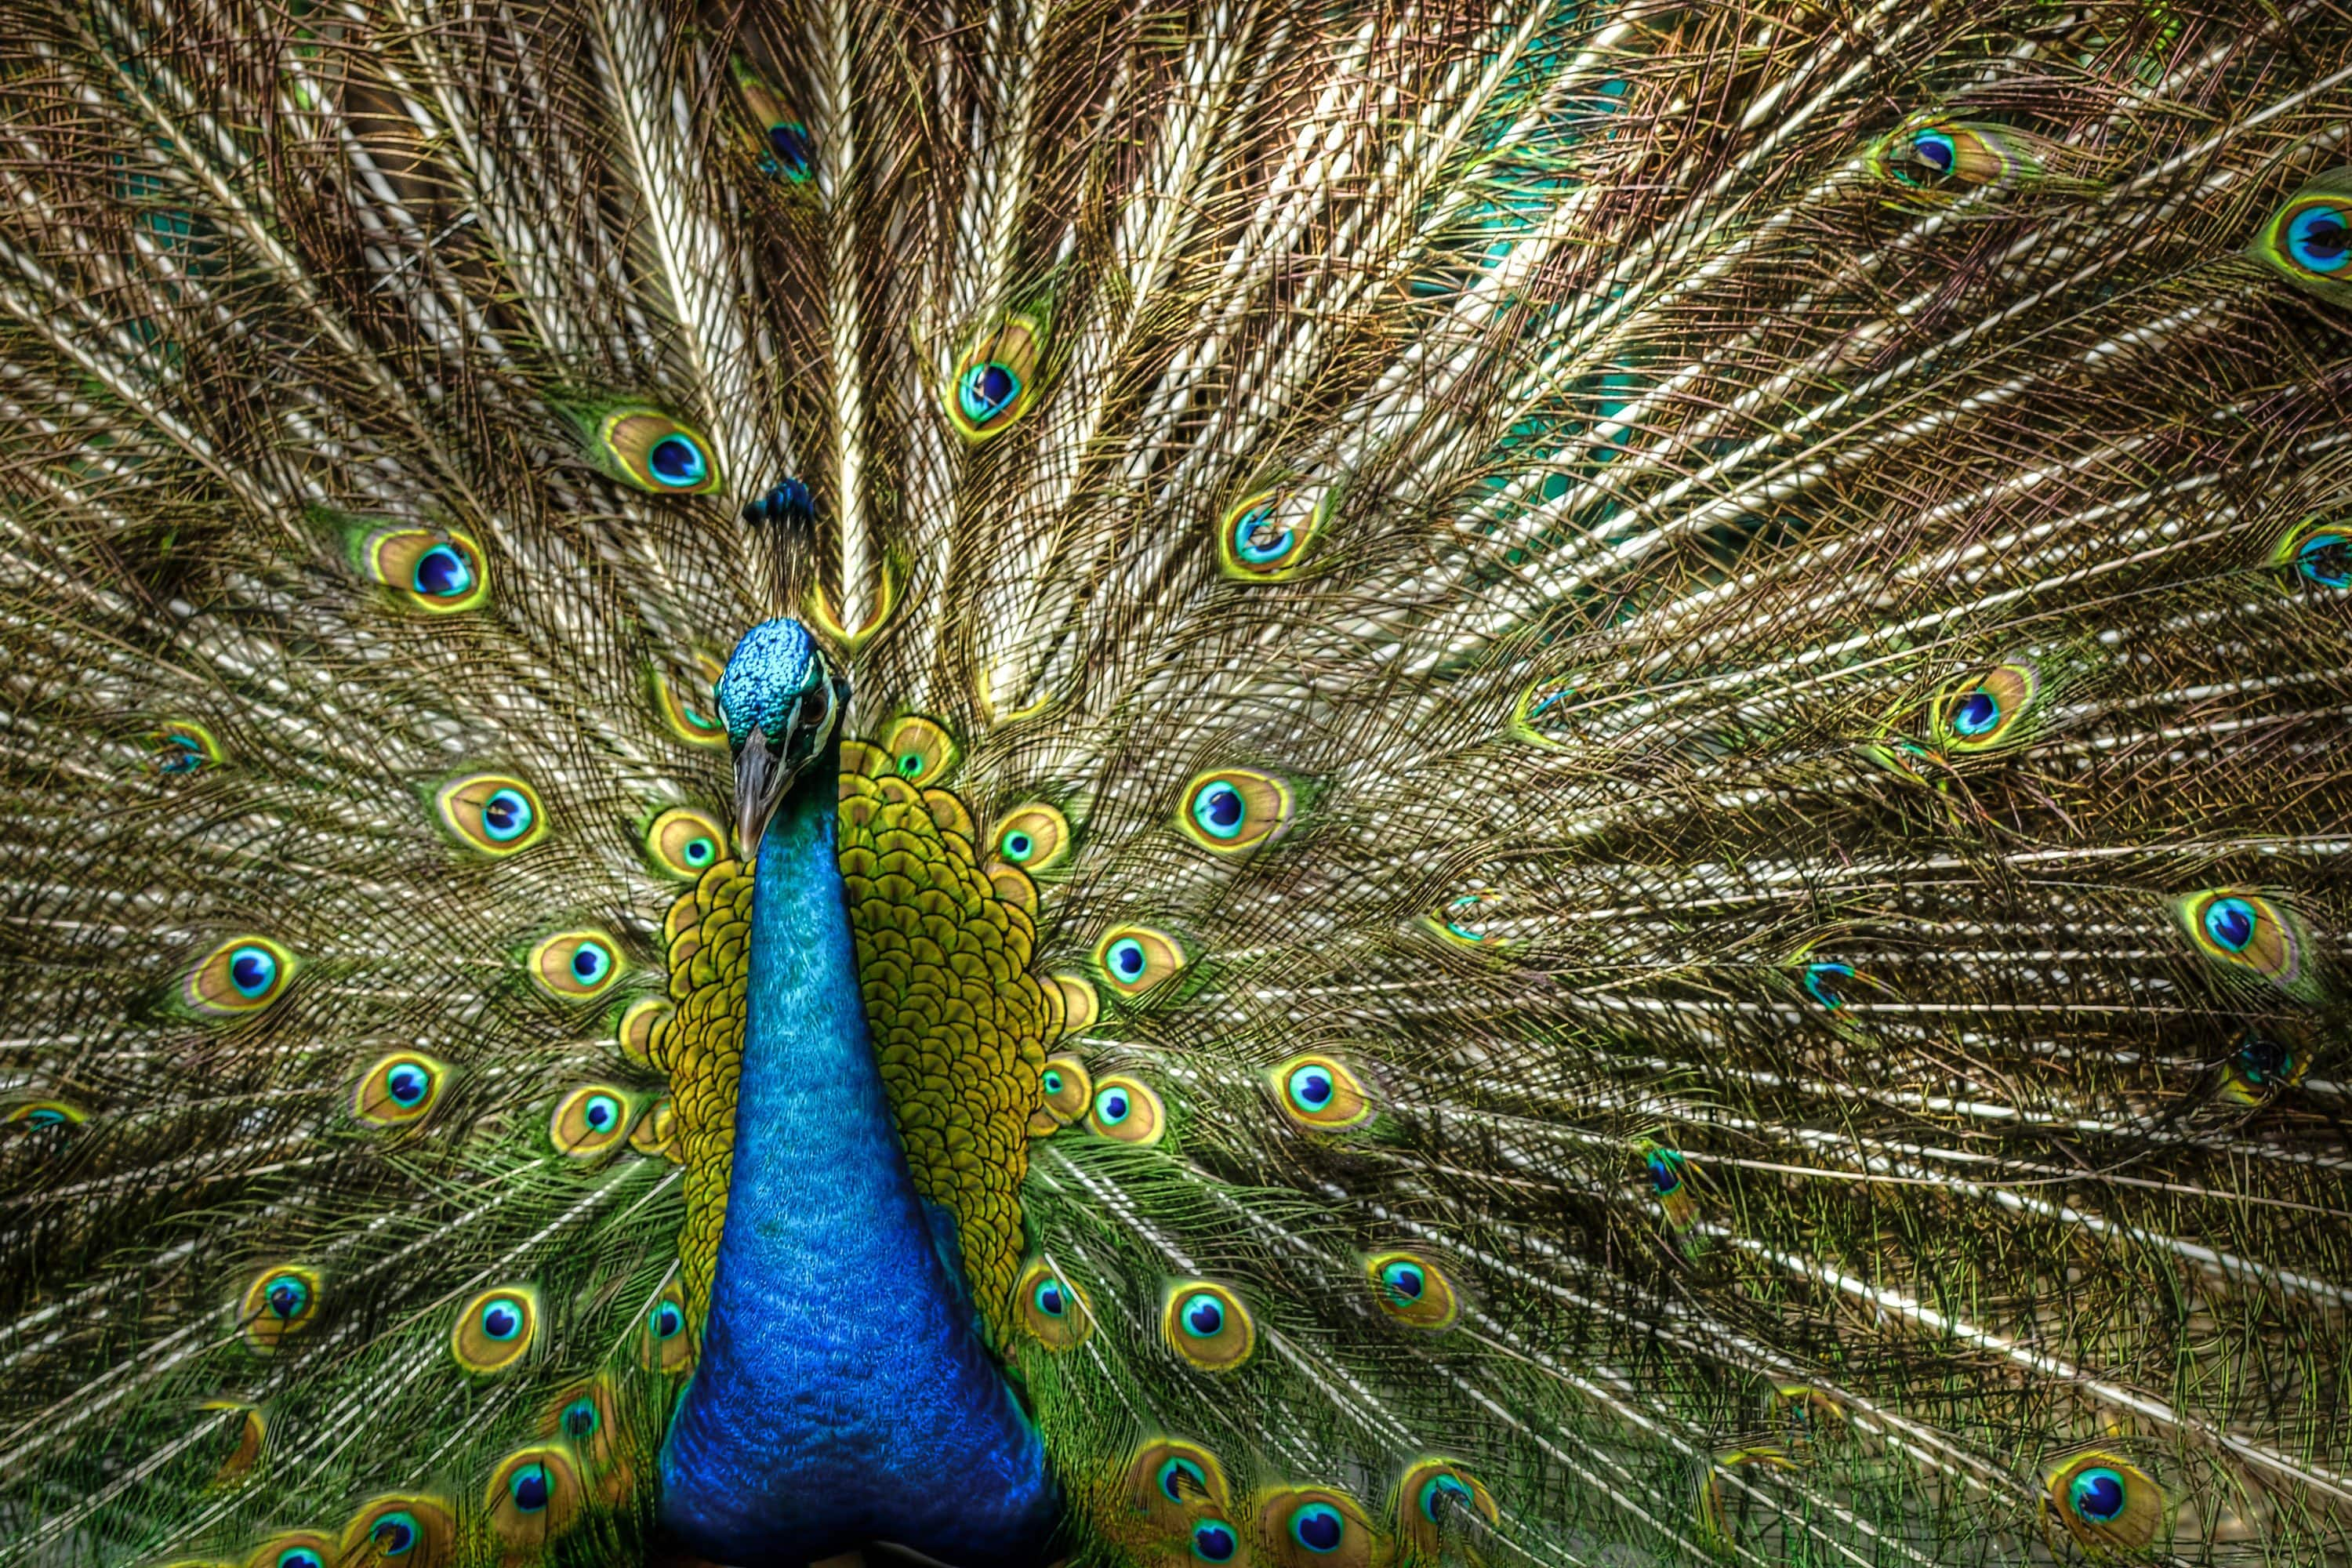 A peacock displays its feathers